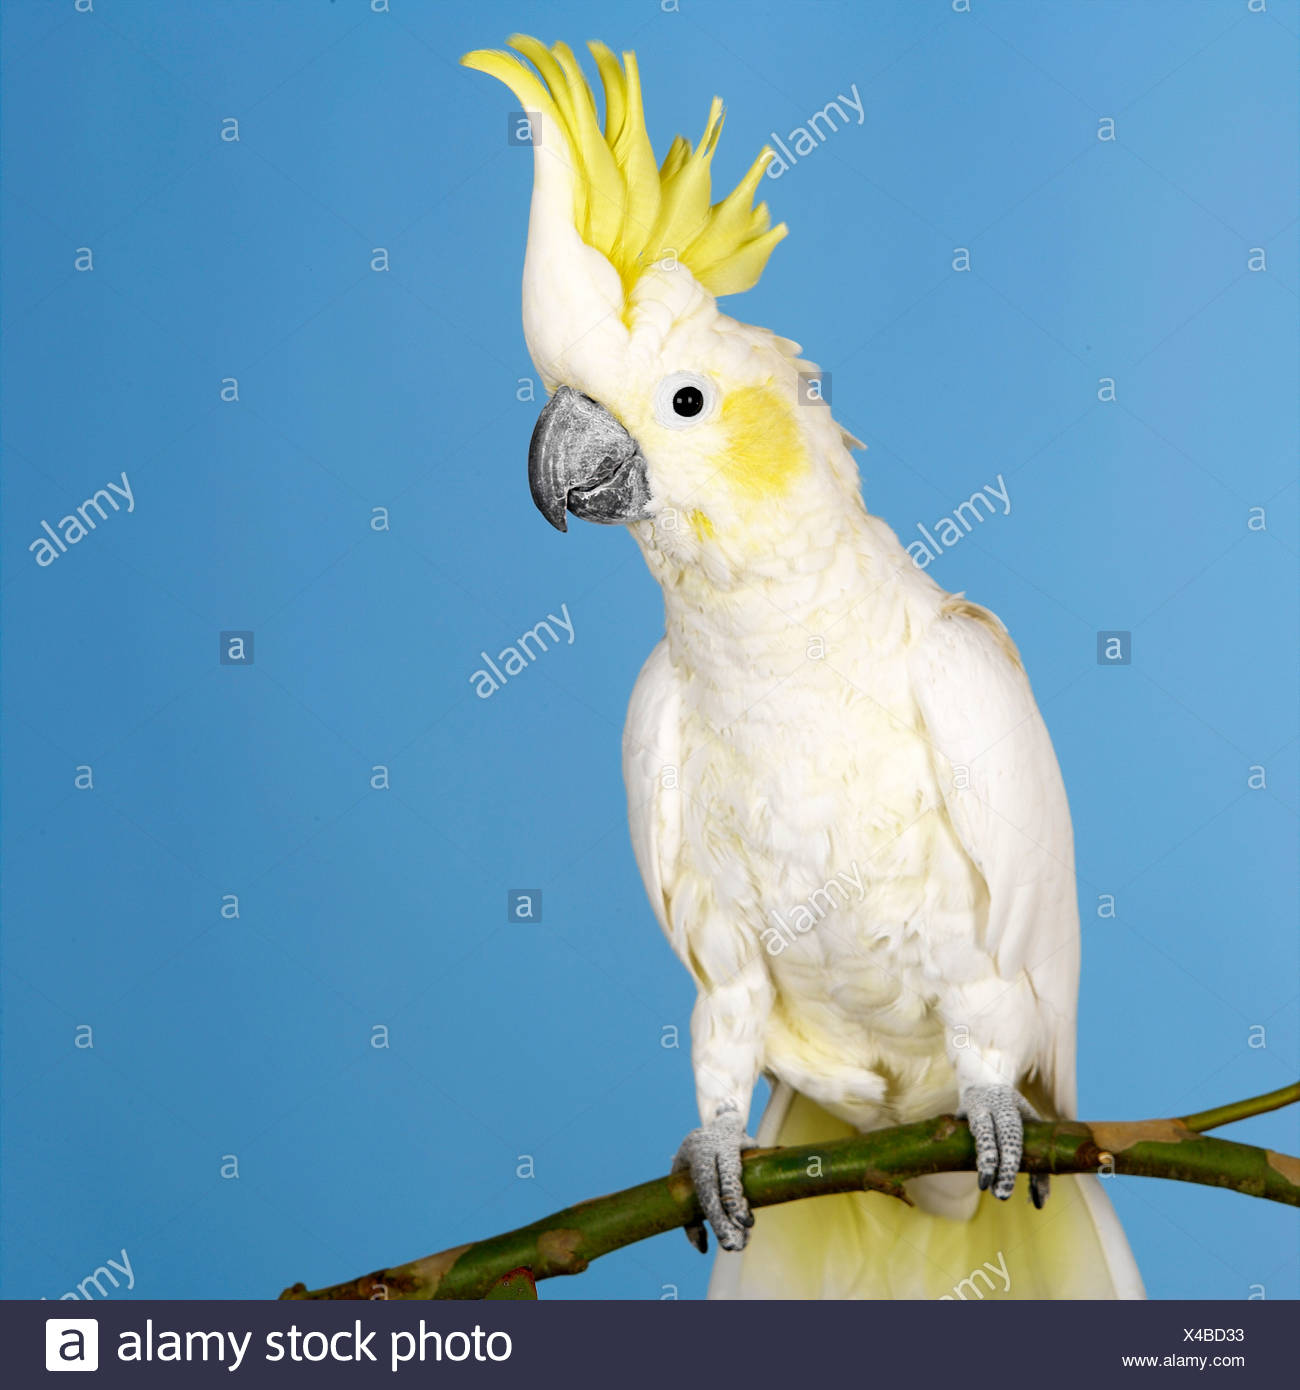 Sulphur Crested Cockatoo - Stock Image